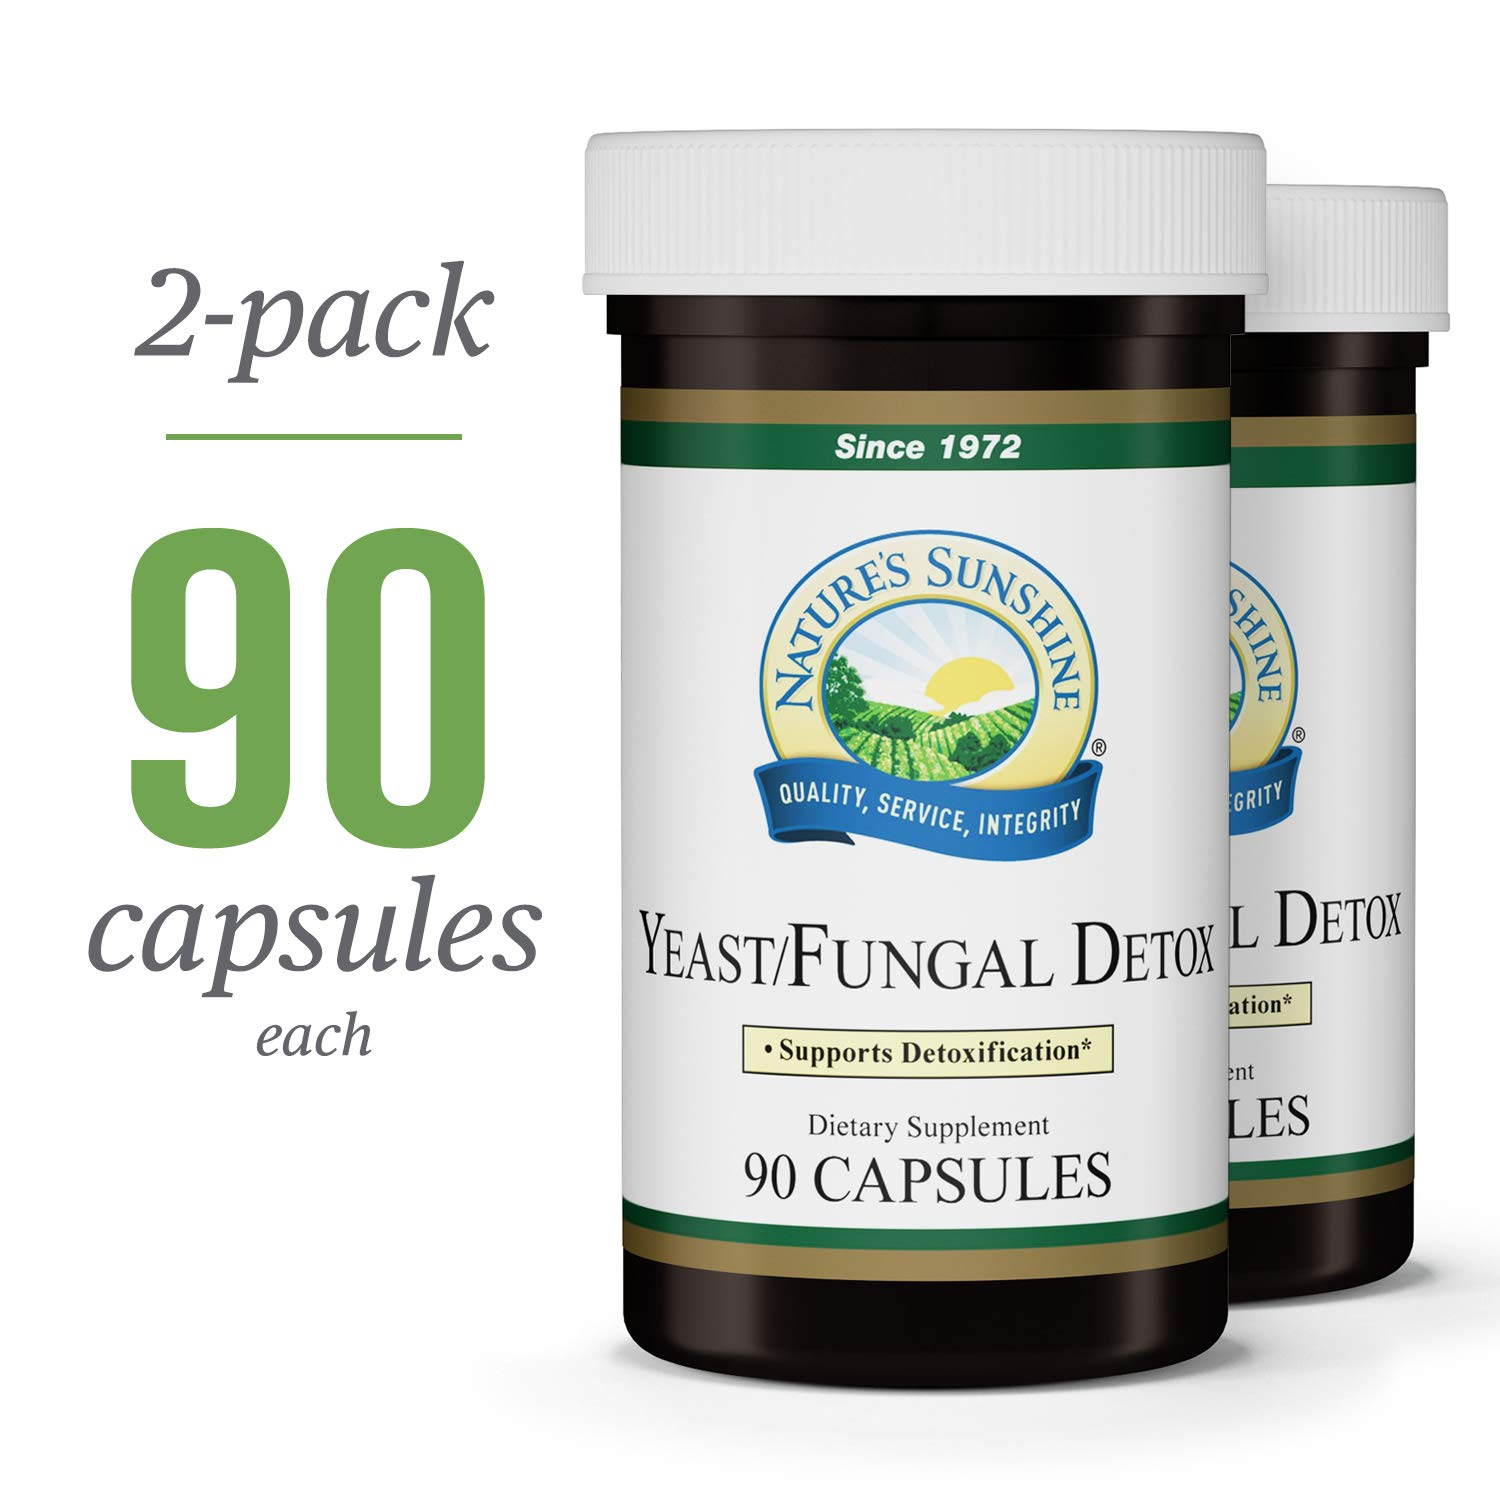 Nature s Sunshine Yeast Fungal Detox, 90 Capsules, 2 Pack Yeast Detox Supplement Provides Candida Cleanse and Promotes Healthy Balance of Microflora